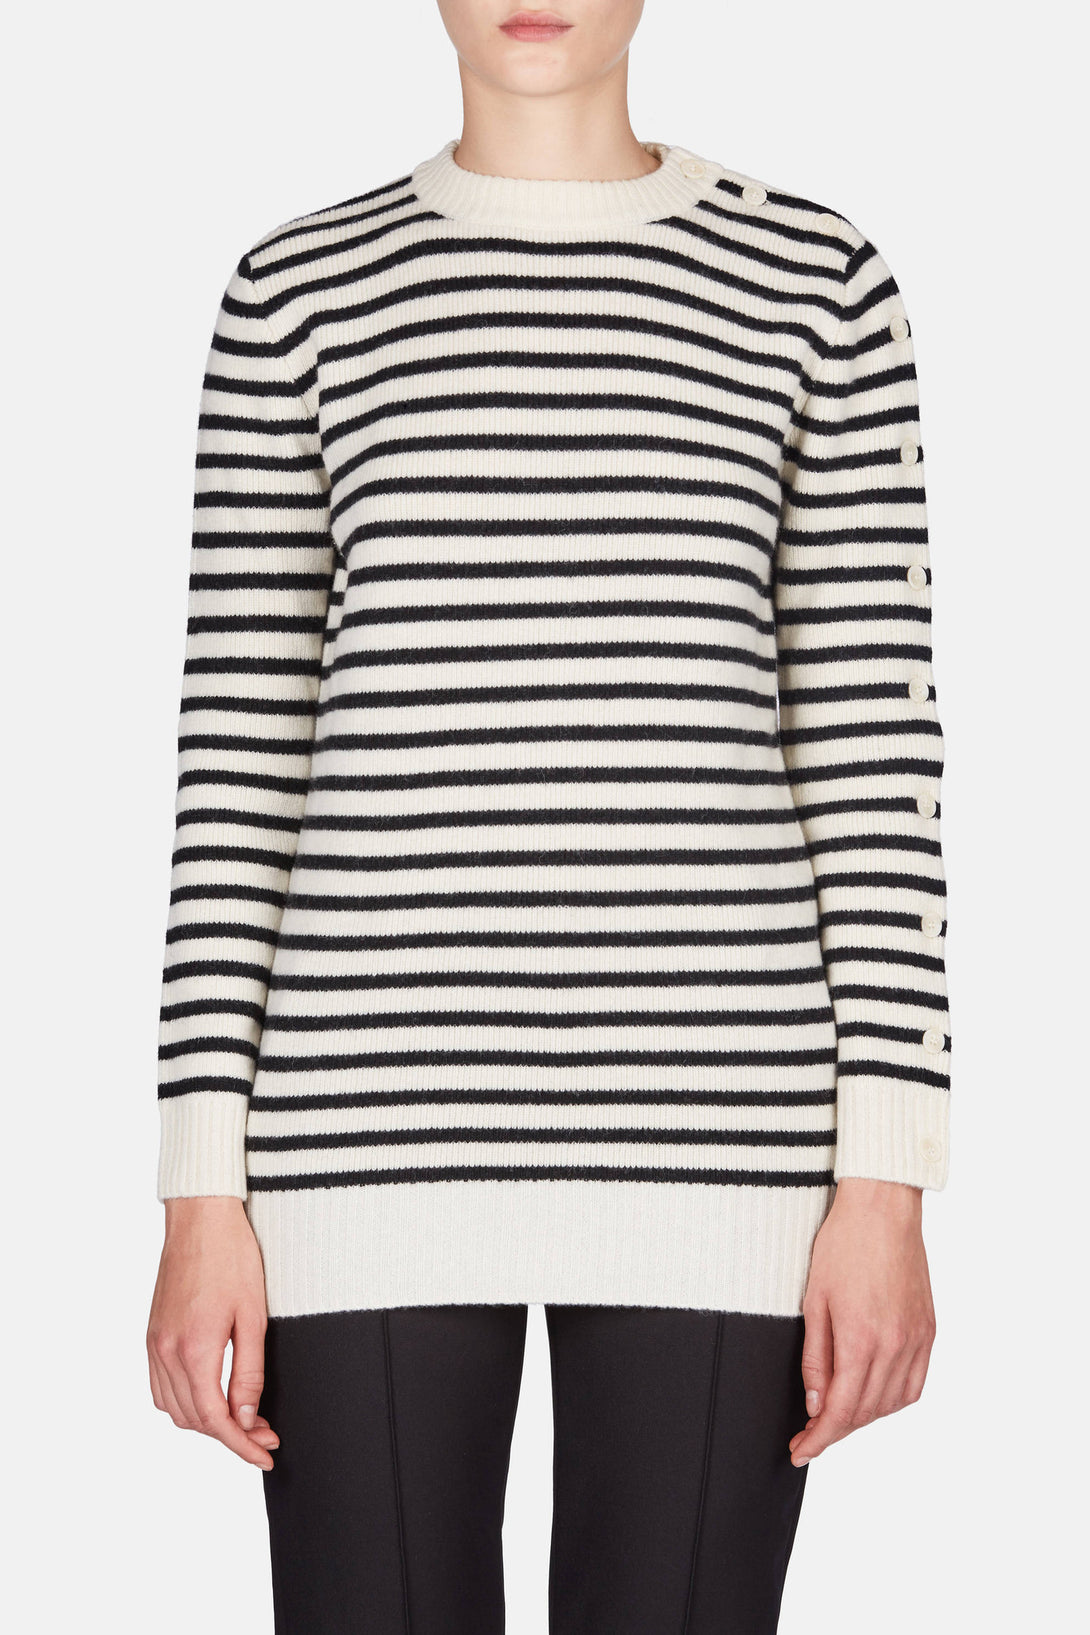 Striped Sailor Sweater - Calico/Black